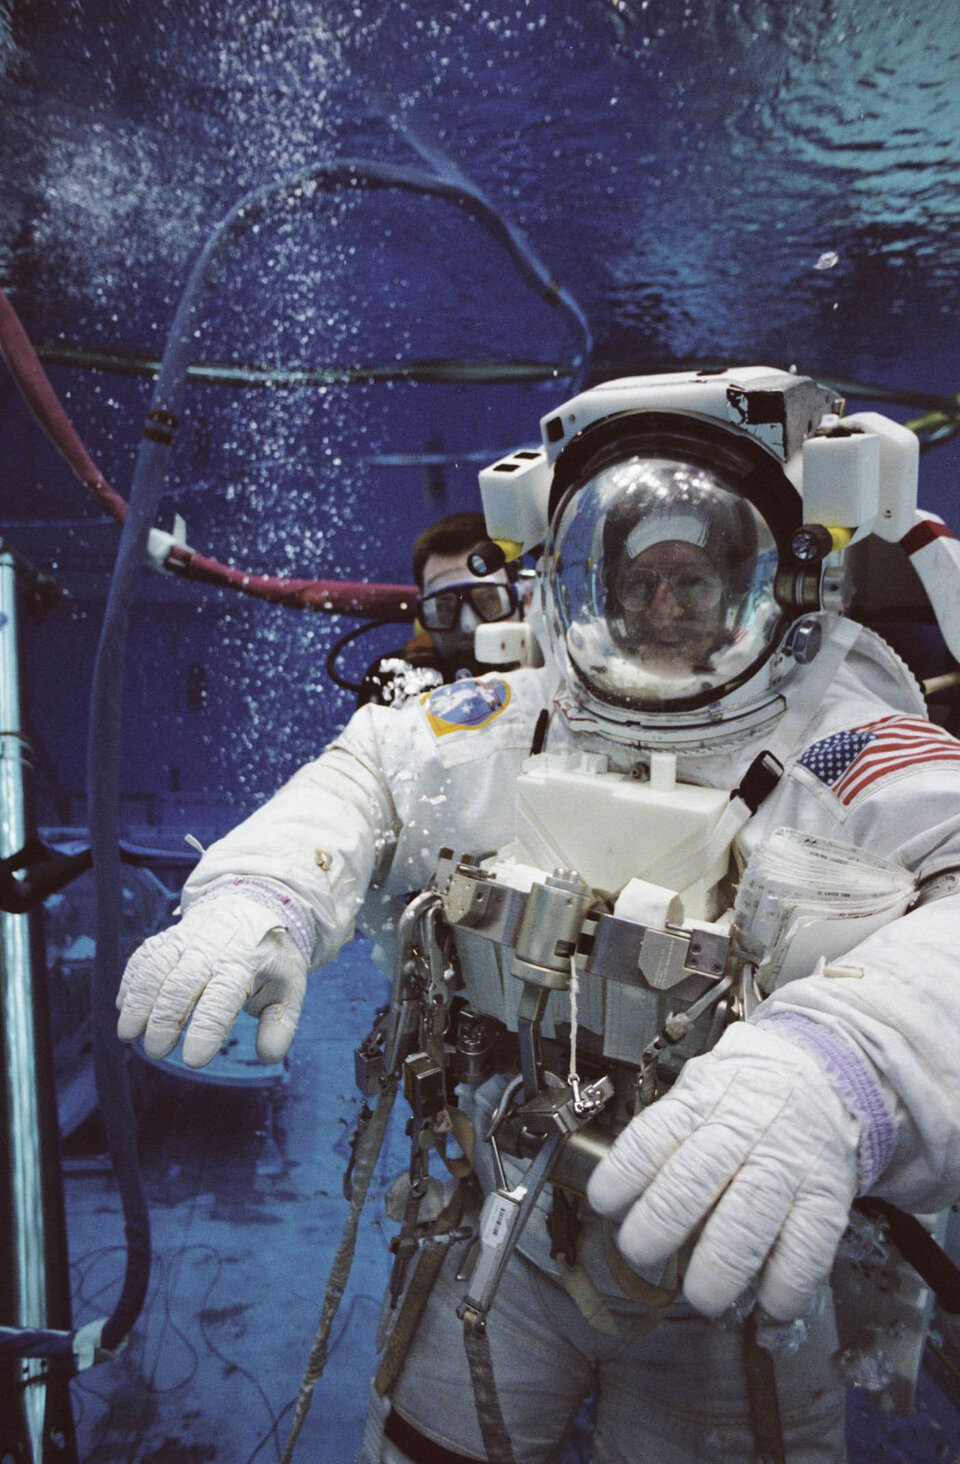 Pedro Duque during an underwater EVA simulation at JSC, Houston